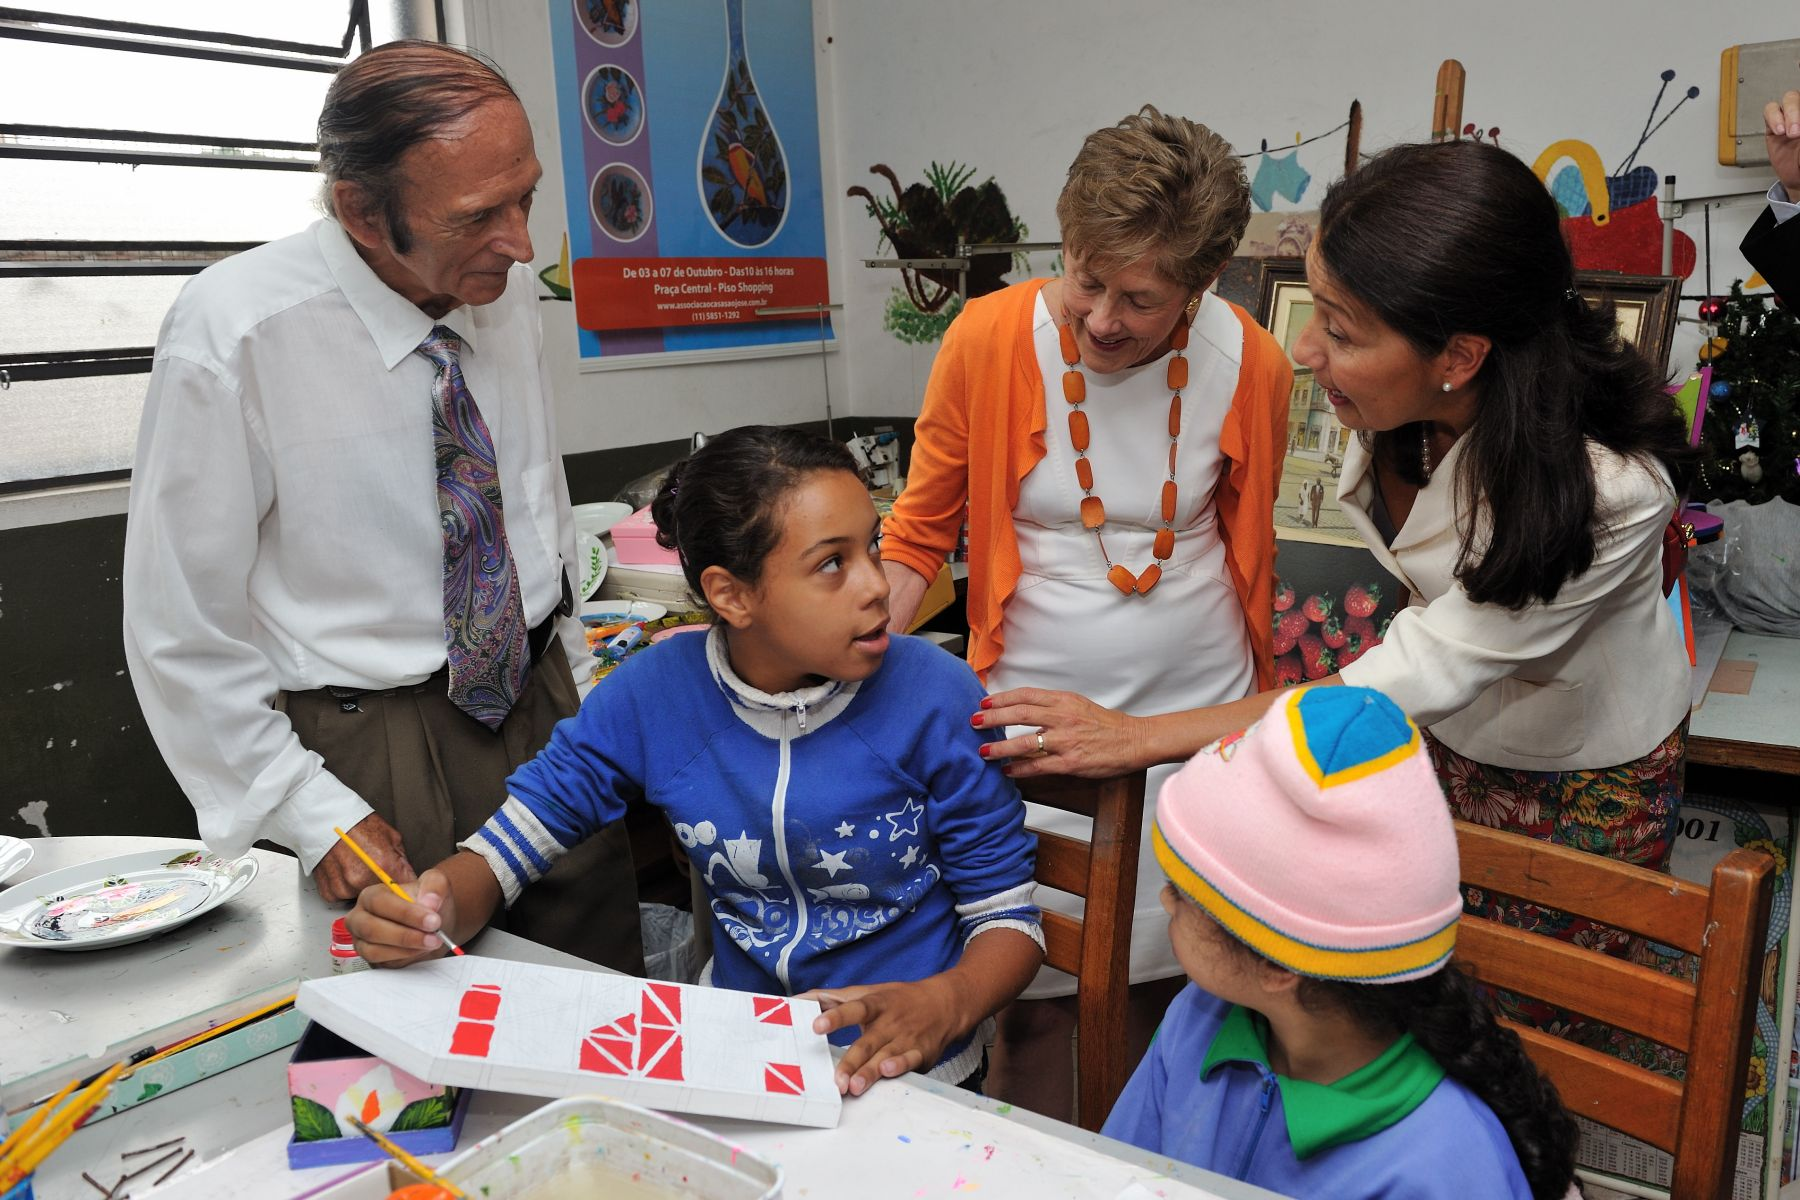 Founded in 1986, Casa São José was is a community centre that caters to the needs of over 2 000 families and also includes a daycare for children and an education facility. Her Excellency is seen here in the art room.